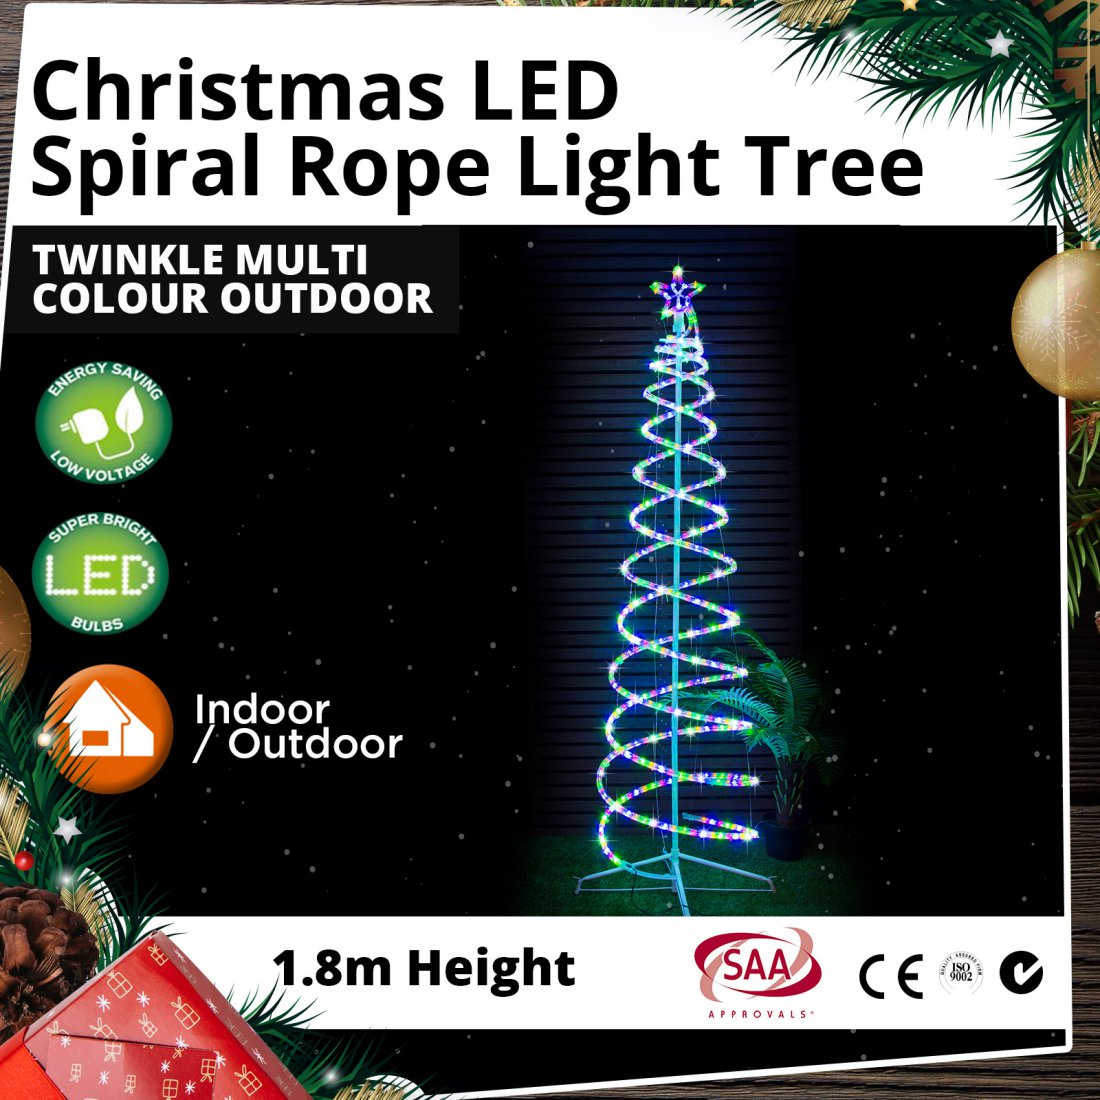 LED Spiral Rope Light Tree 1.8m Twinkle Multi Colour Outdoor Christmas Light